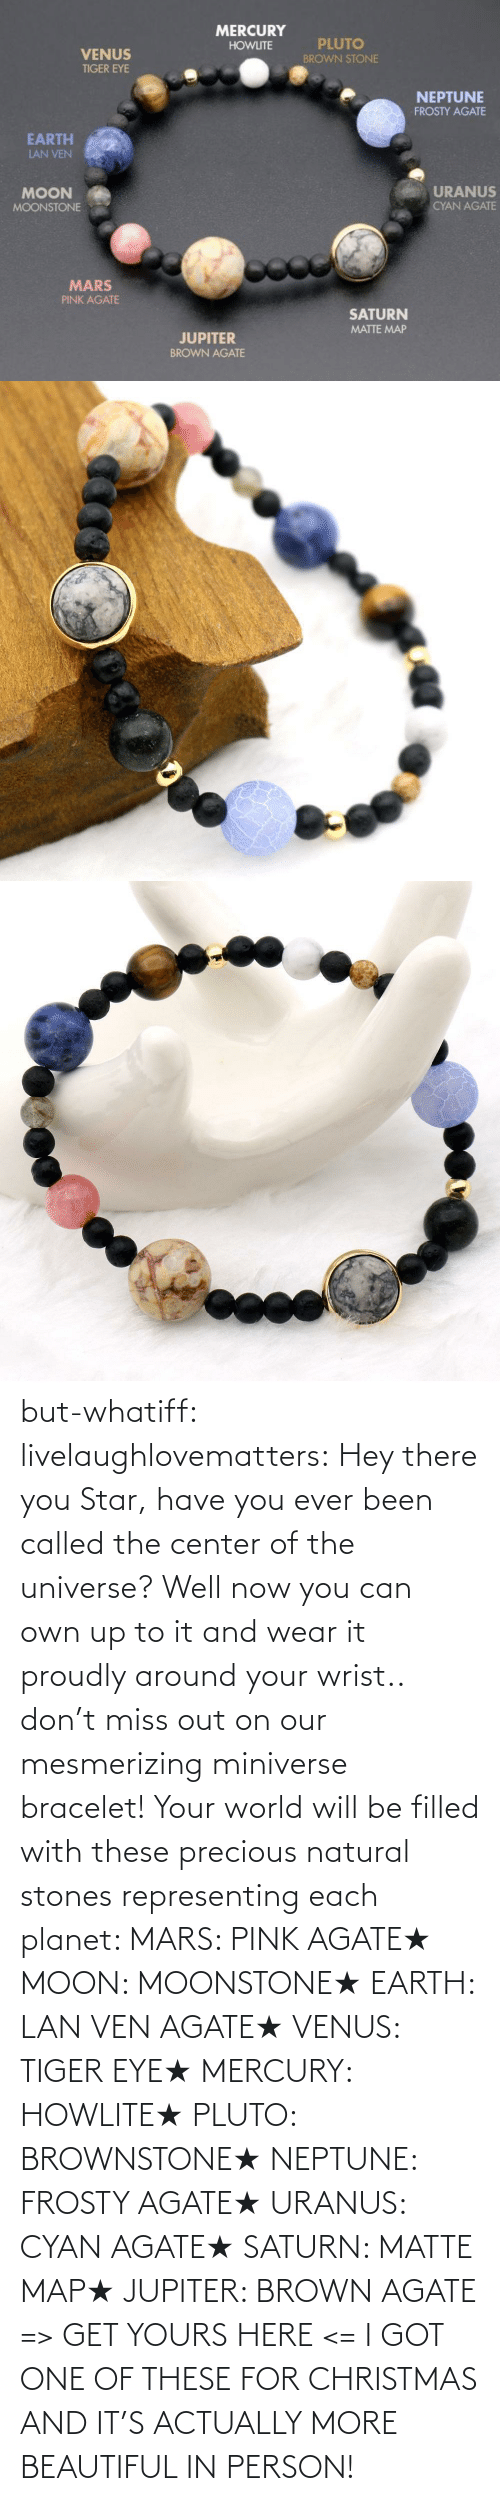 planet: but-whatiff:  livelaughlovematters:  Hey there you Star, have you ever been called the center of the universe? Well now you can own up to it and wear it proudly around your wrist.. don't miss out on our mesmerizing miniverse bracelet! Your world will be filled with these precious natural stones representing each planet:  MARS: PINK AGATE★ MOON: MOONSTONE★ EARTH: LAN VEN AGATE★ VENUS: TIGER EYE★ MERCURY: HOWLITE★ PLUTO: BROWNSTONE★ NEPTUNE: FROSTY AGATE★ URANUS: CYAN AGATE★ SATURN: MATTE MAP★ JUPITER: BROWN AGATE => GET YOURS HERE <=  I GOT ONE OF THESE FOR CHRISTMAS AND IT'S ACTUALLY MORE BEAUTIFUL IN PERSON!